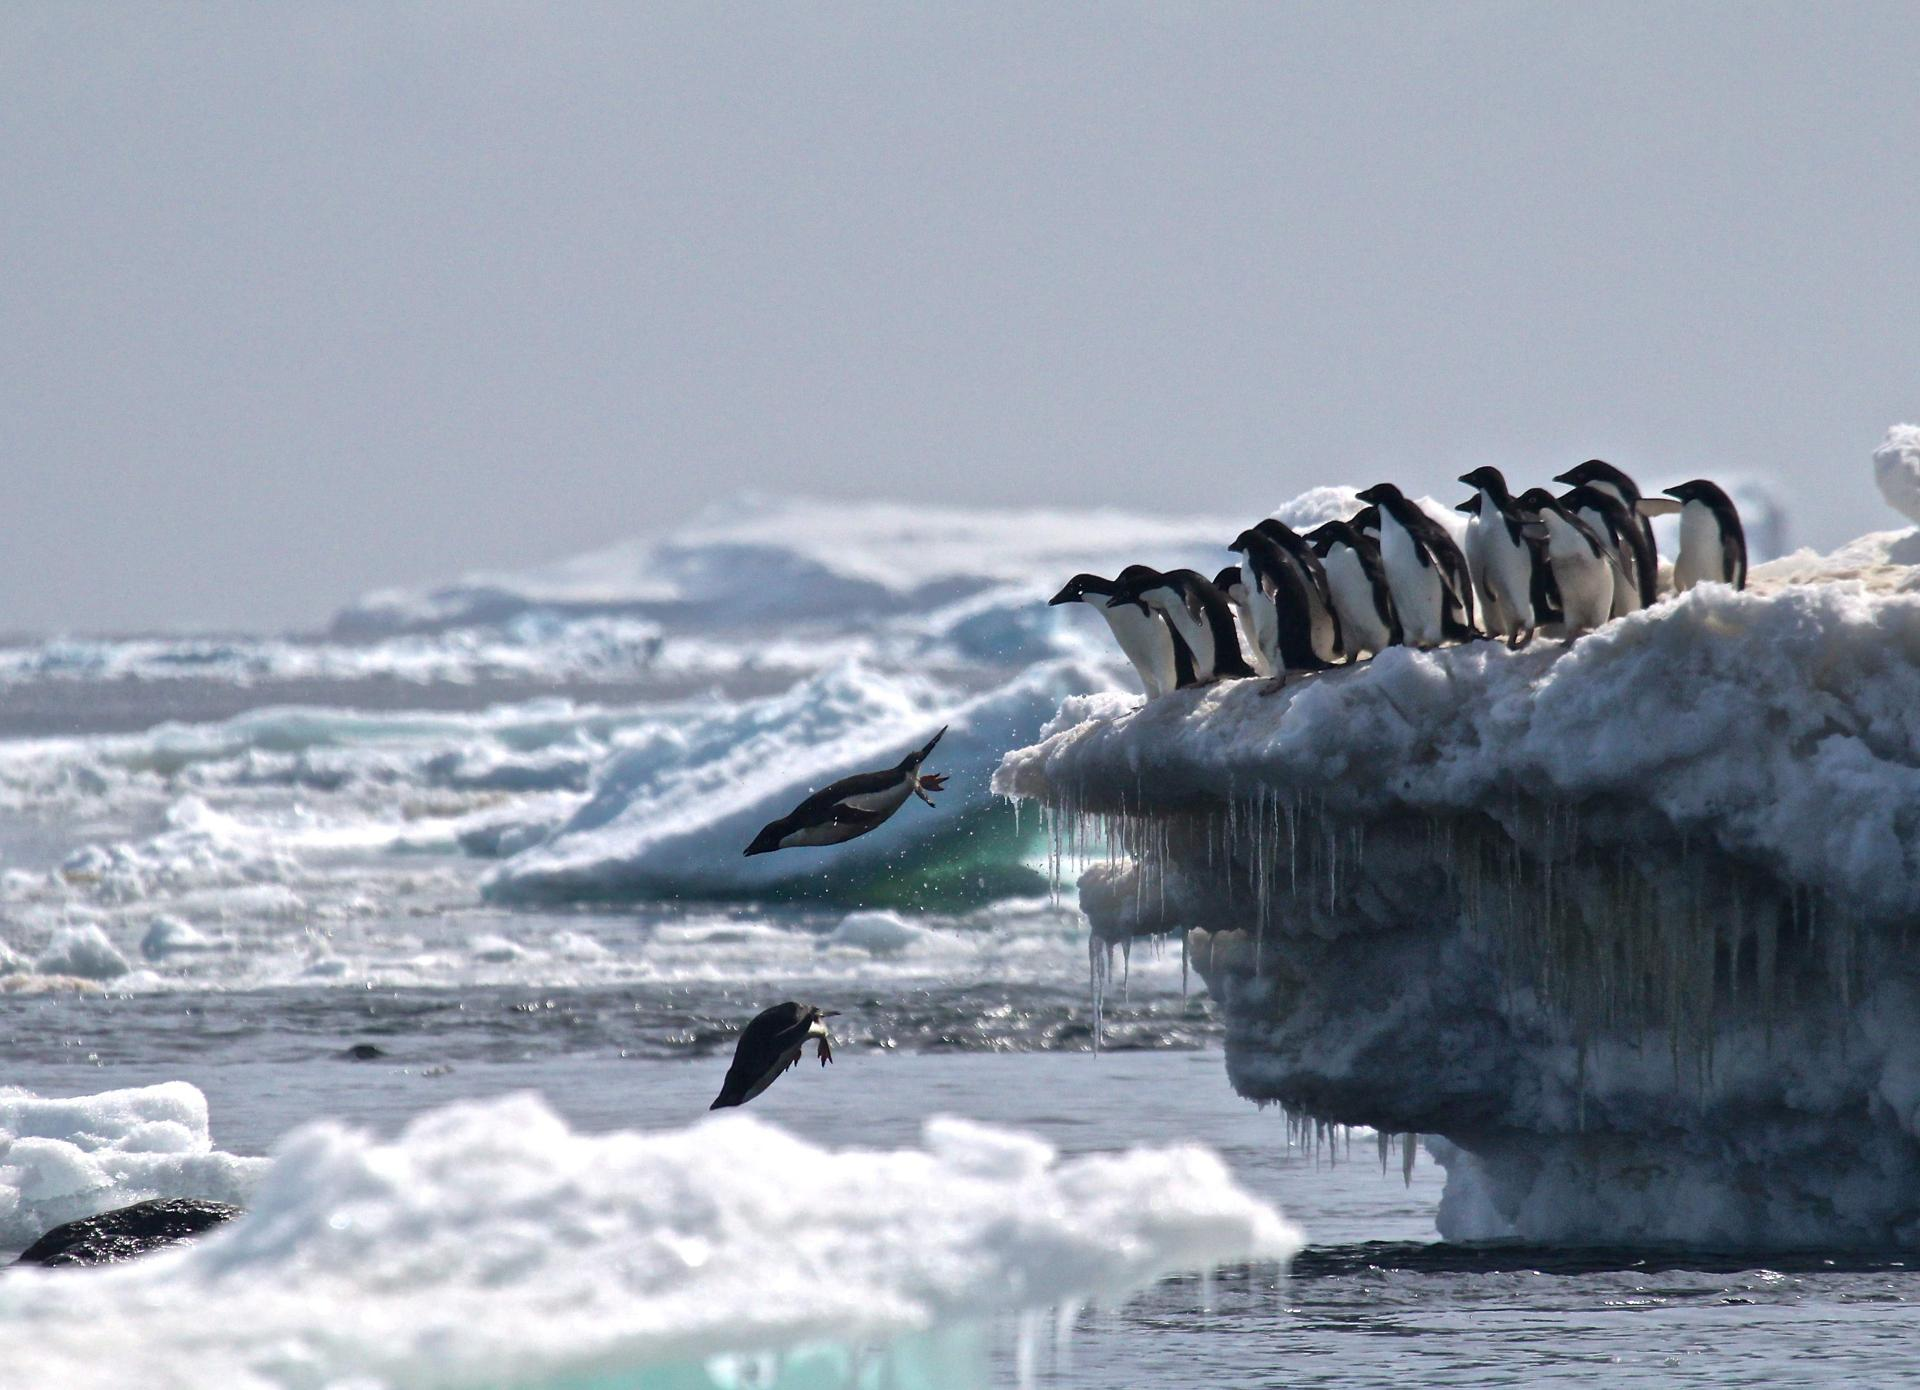 Adélie penguins leapt off an iceberg at Danger Islands in Antarctica. Researchers led by the Woods Hole Oceanographic Institution on Cape Cod discovered a supercolony of 1.5 million of the penguins, a species that biologists previously believed to be declining.